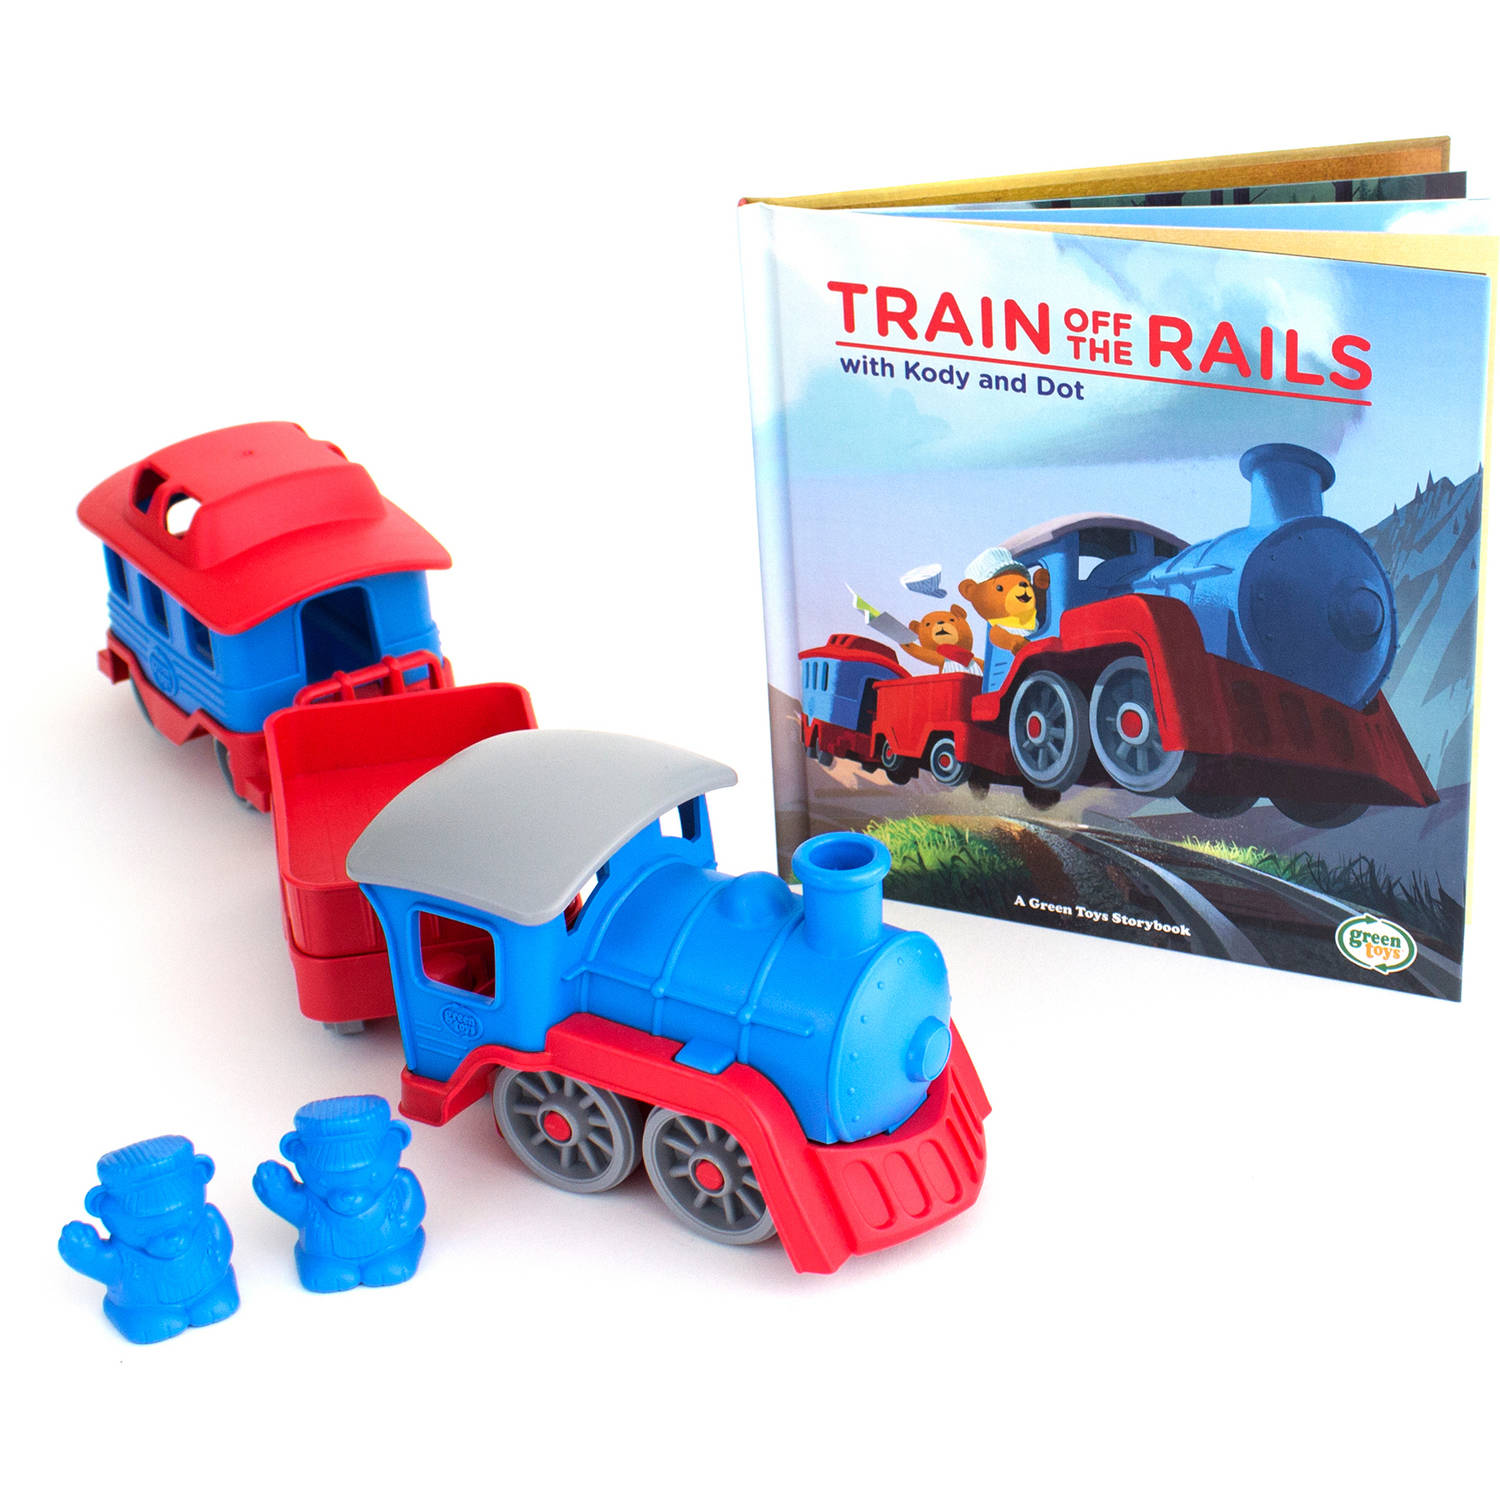 Green Toys Storybook and Train Set by Green Toys